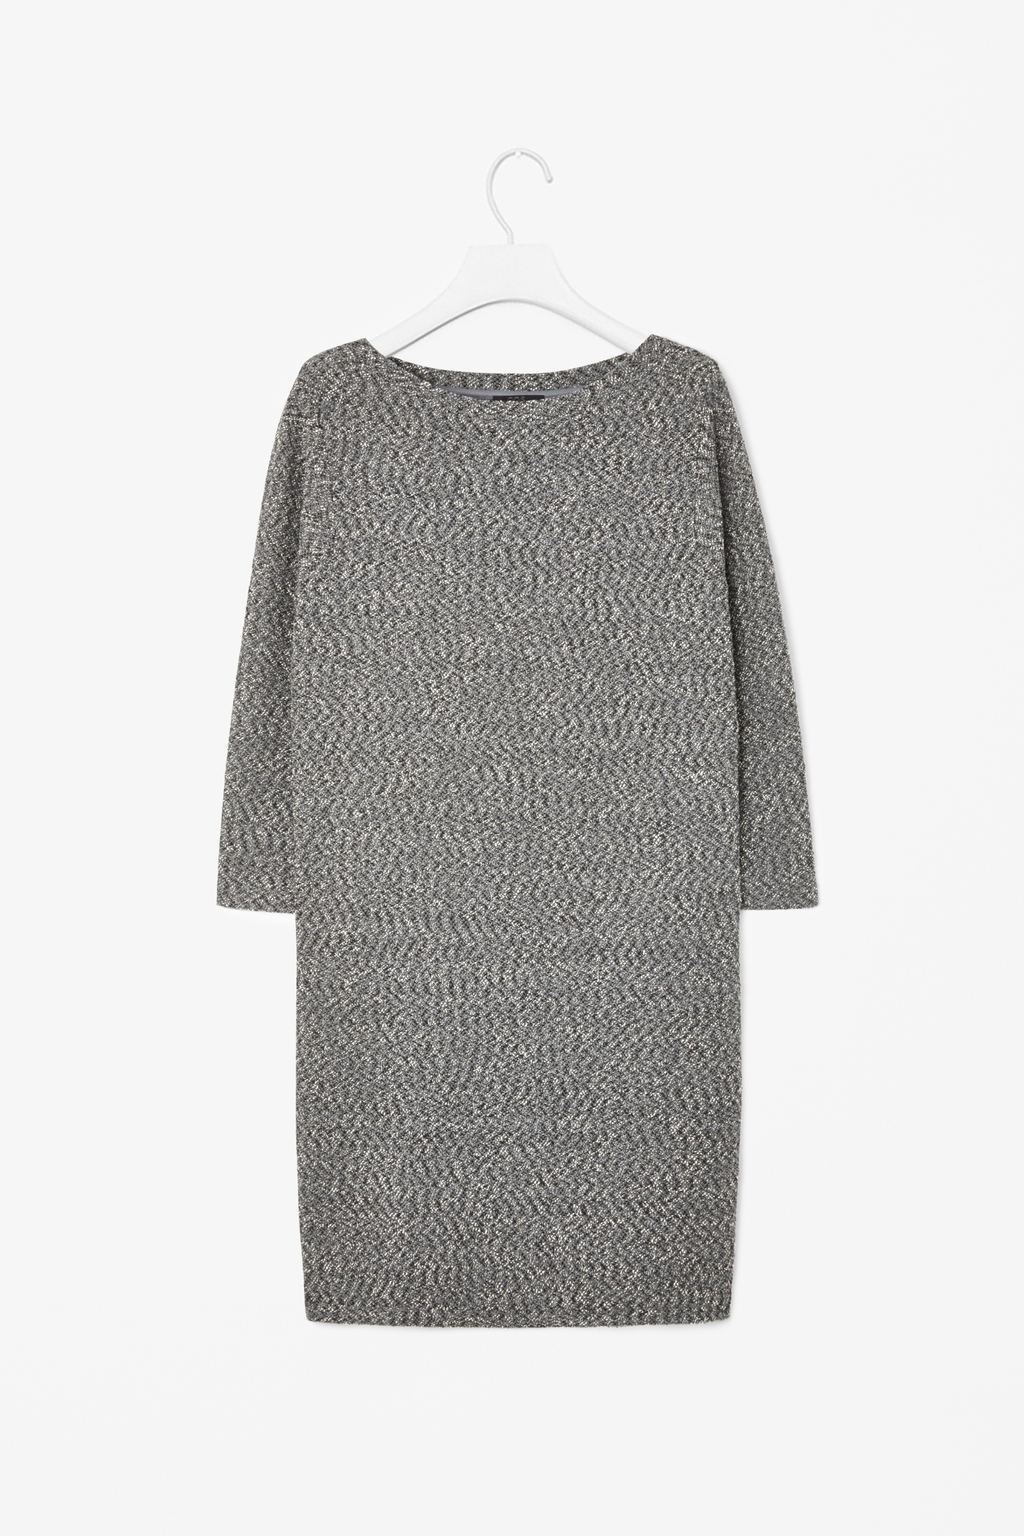 Textured Jersey Dress - style: jumper dress; length: mid thigh; neckline: slash/boat neckline; predominant colour: mid grey; occasions: casual, creative work; fit: straight cut; fibres: cotton - mix; sleeve length: 3/4 length; sleeve style: standard; texture group: woven light midweight; pattern: marl; season: a/w 2014